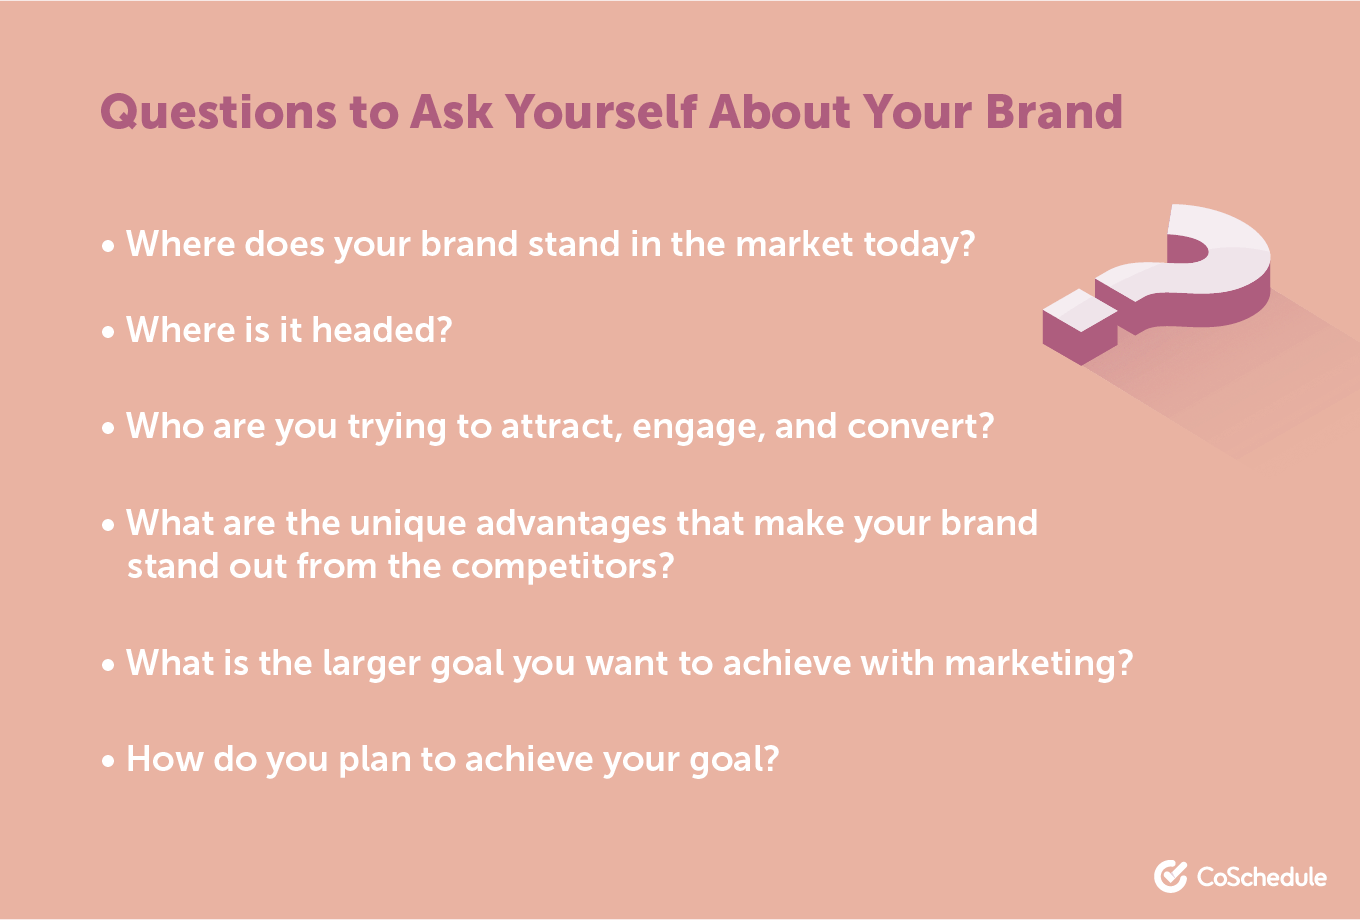 Questions to ask about your brand